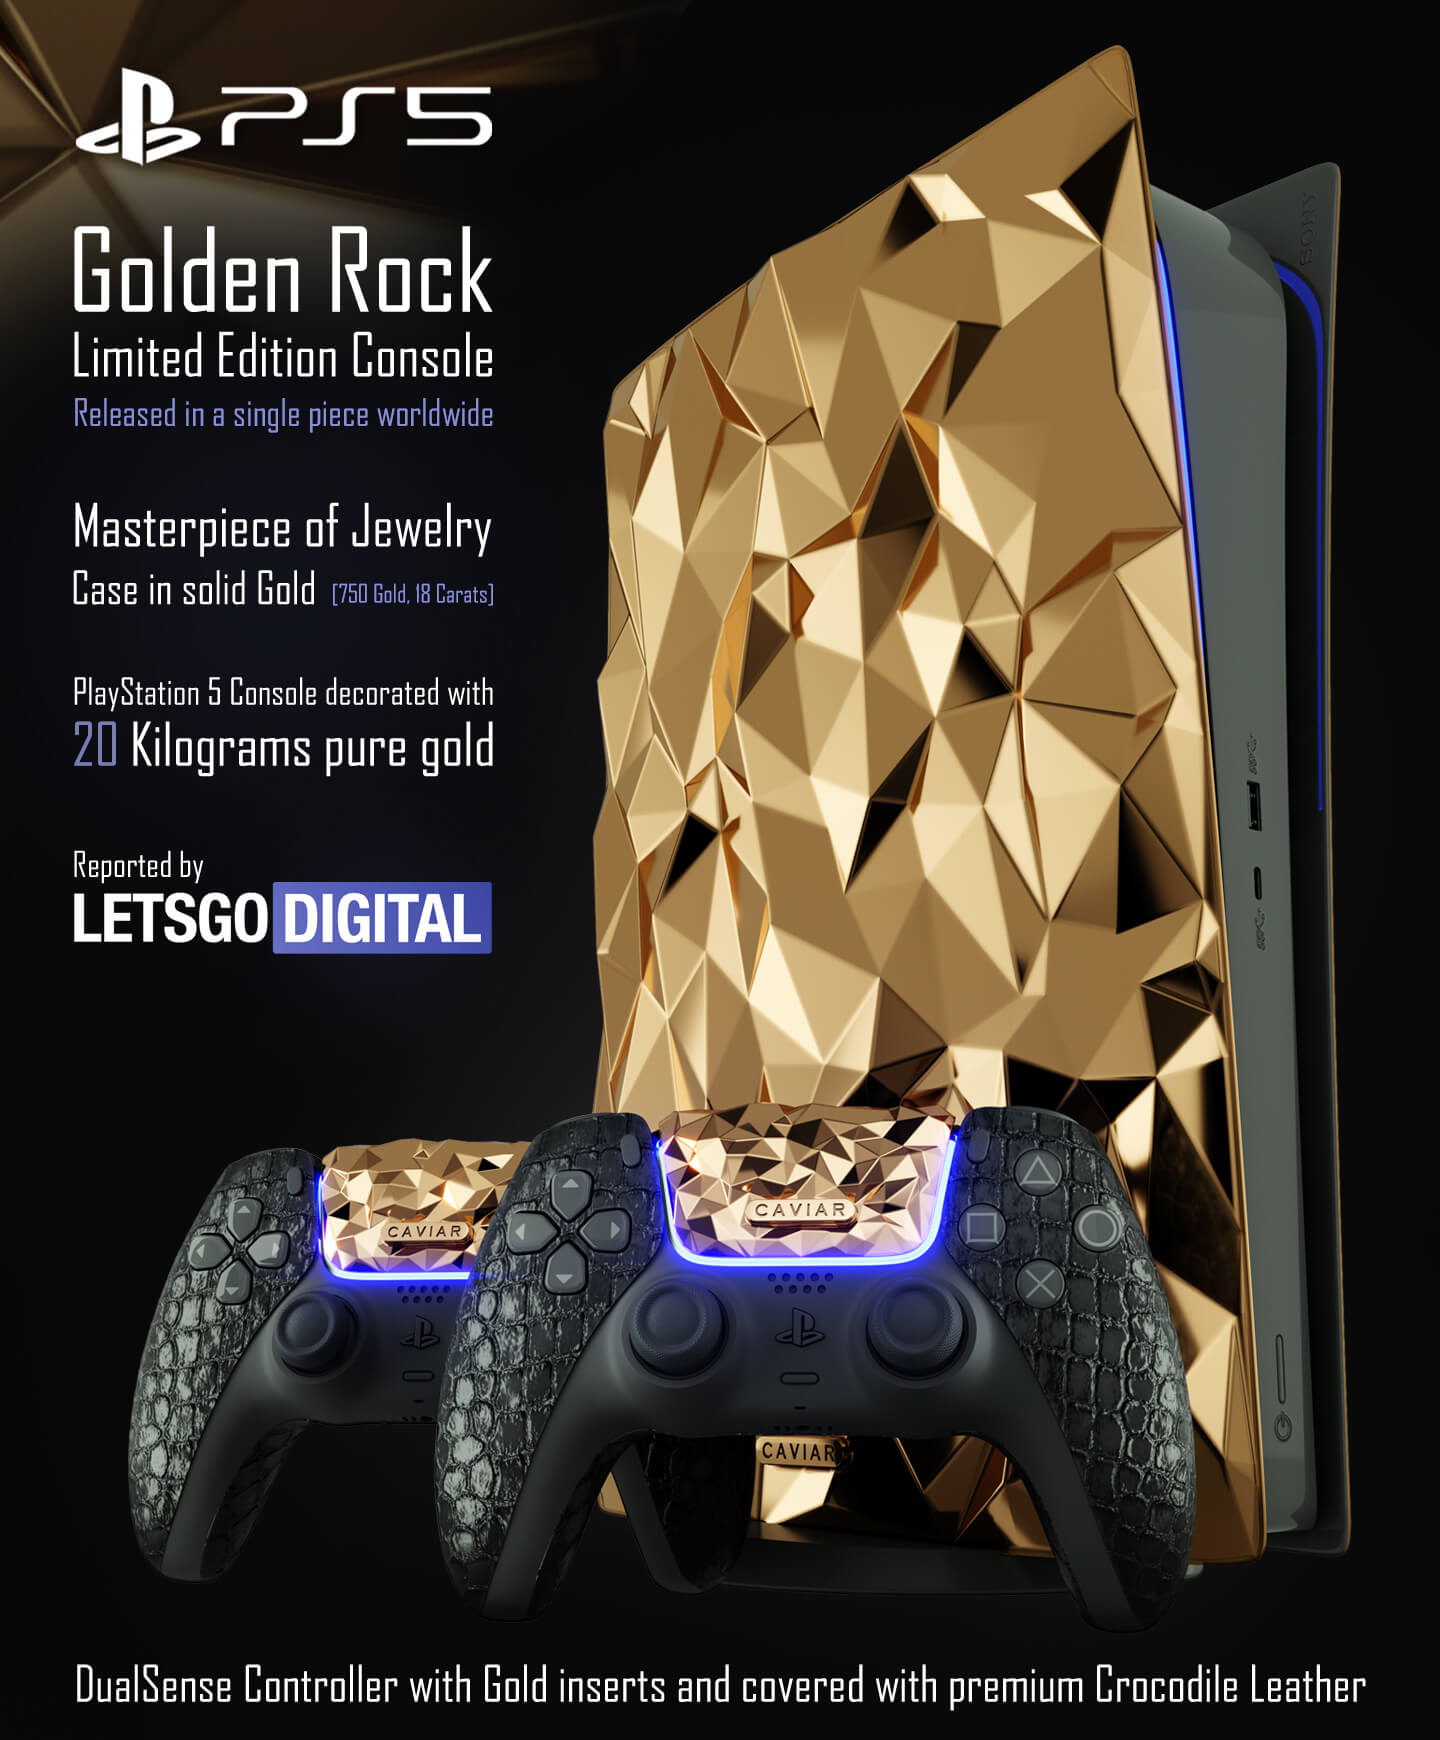 Sony PS5 limited edition console goud